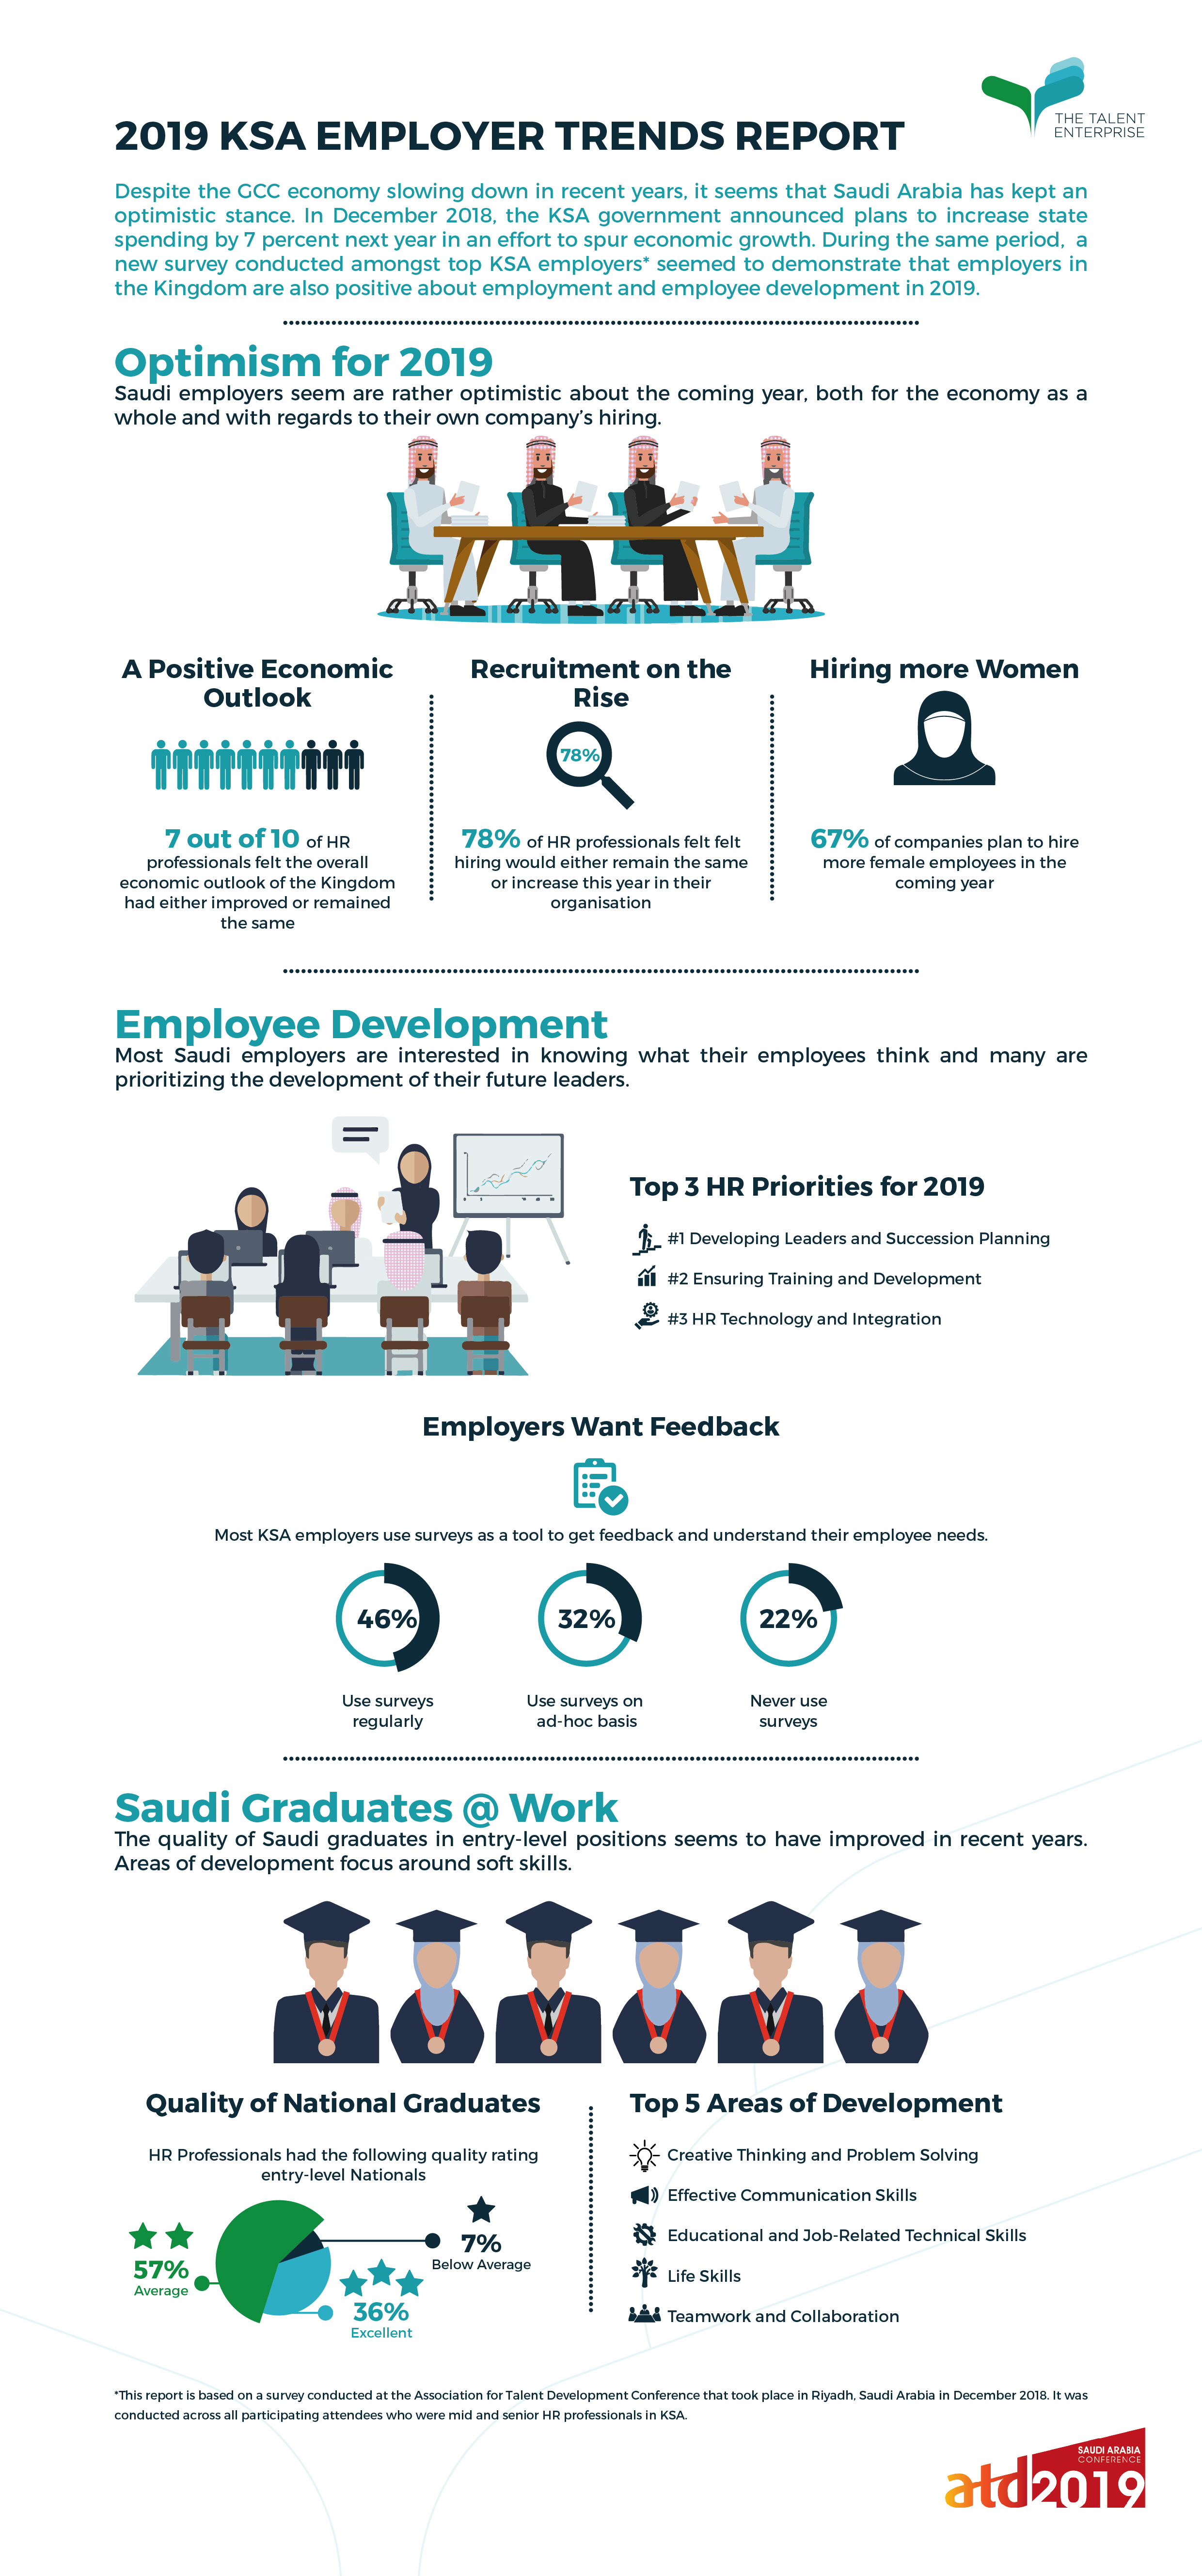 Optimism Spreading Across KSA Employers